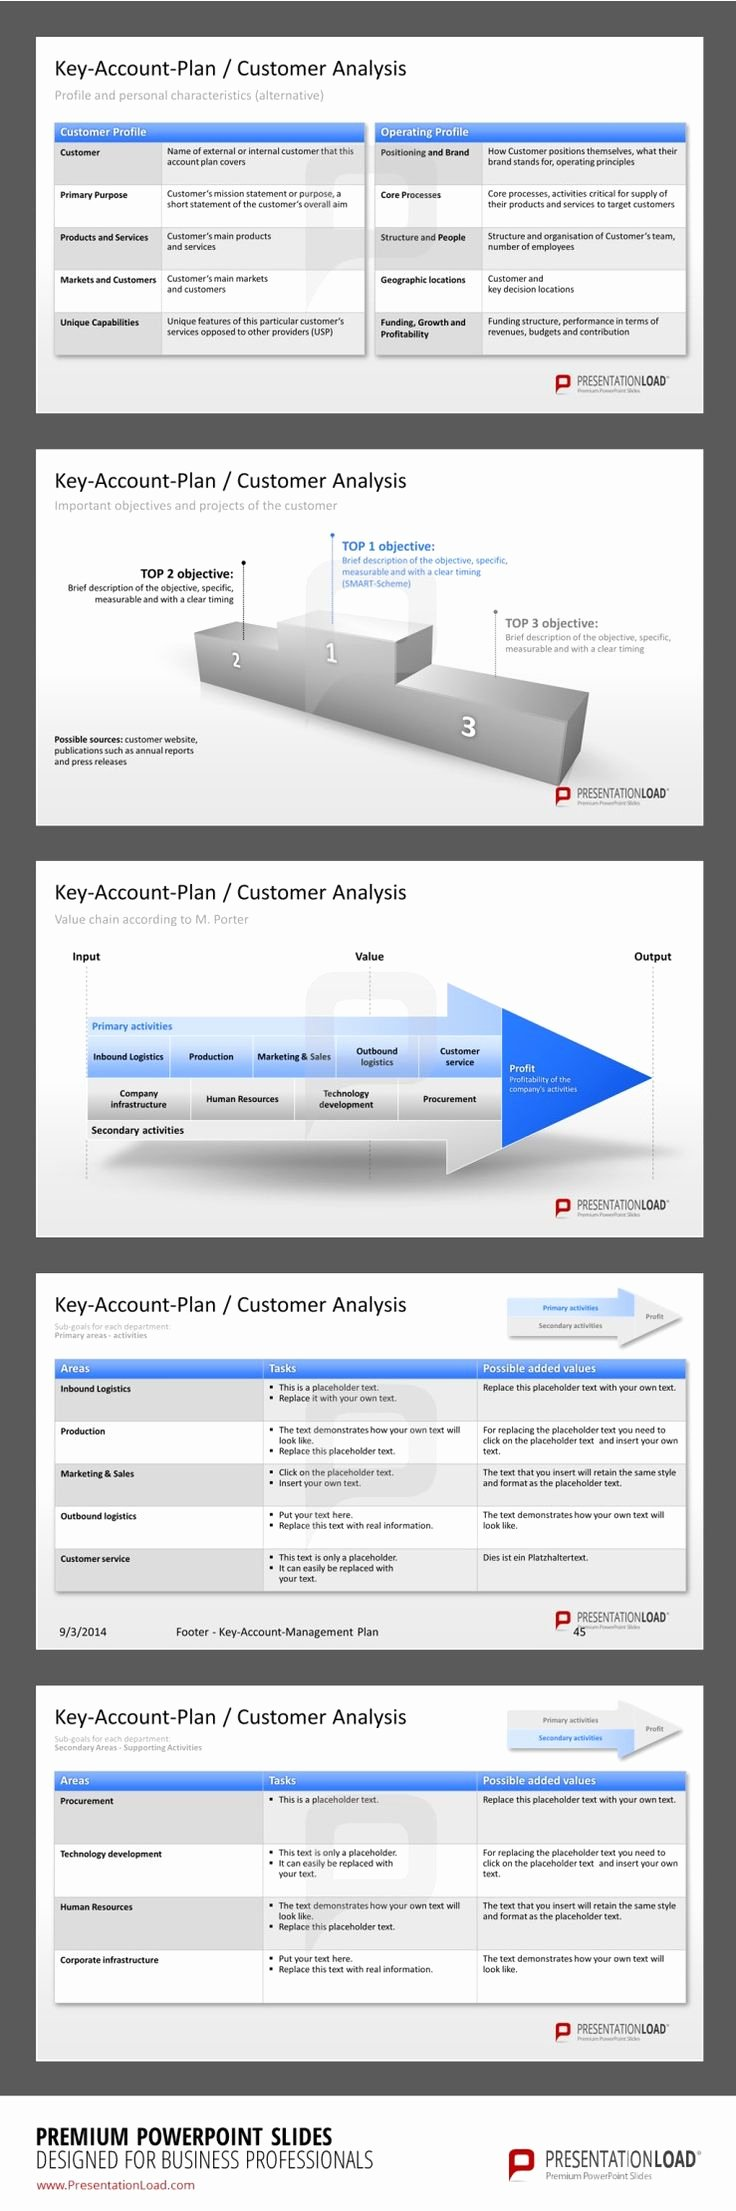 Account Management Plan Template Unique Key Account Management Powerpoint Presentation Templates